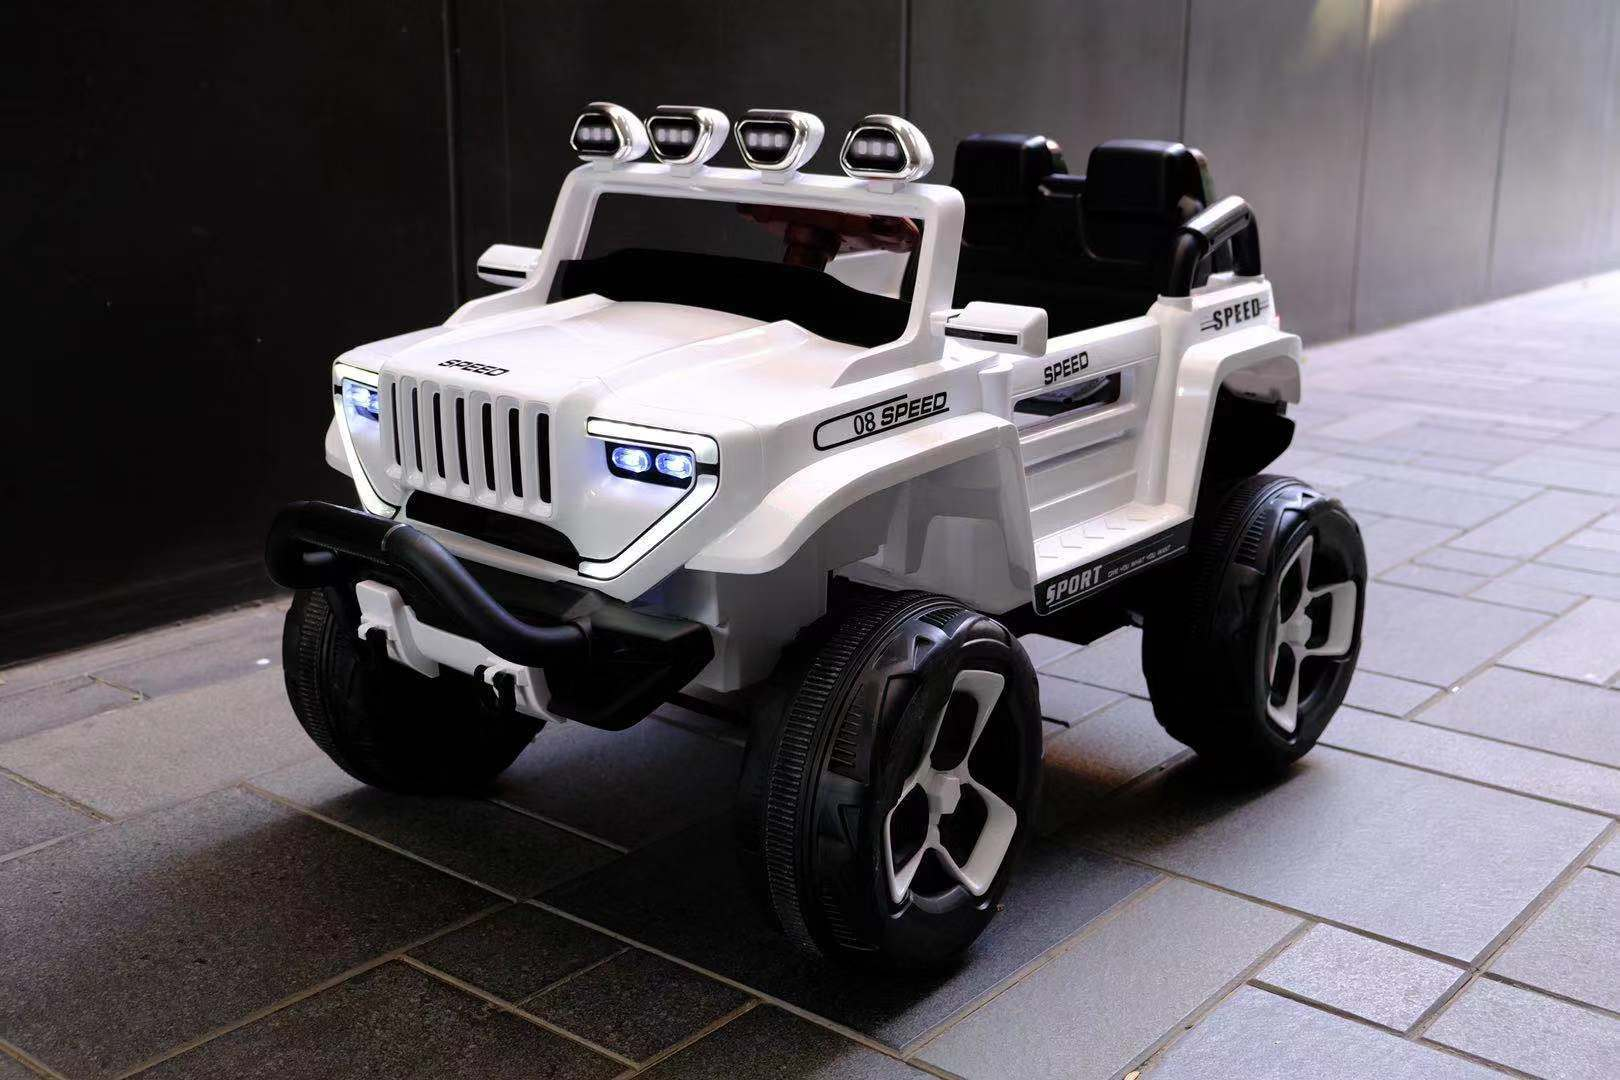 China New Ride On Jeep Big Car For Kids Toy Battery Kids Electric Cars For 12 Years Old To Ride China Jeep Big Car And Big Car For Kids Toy Price